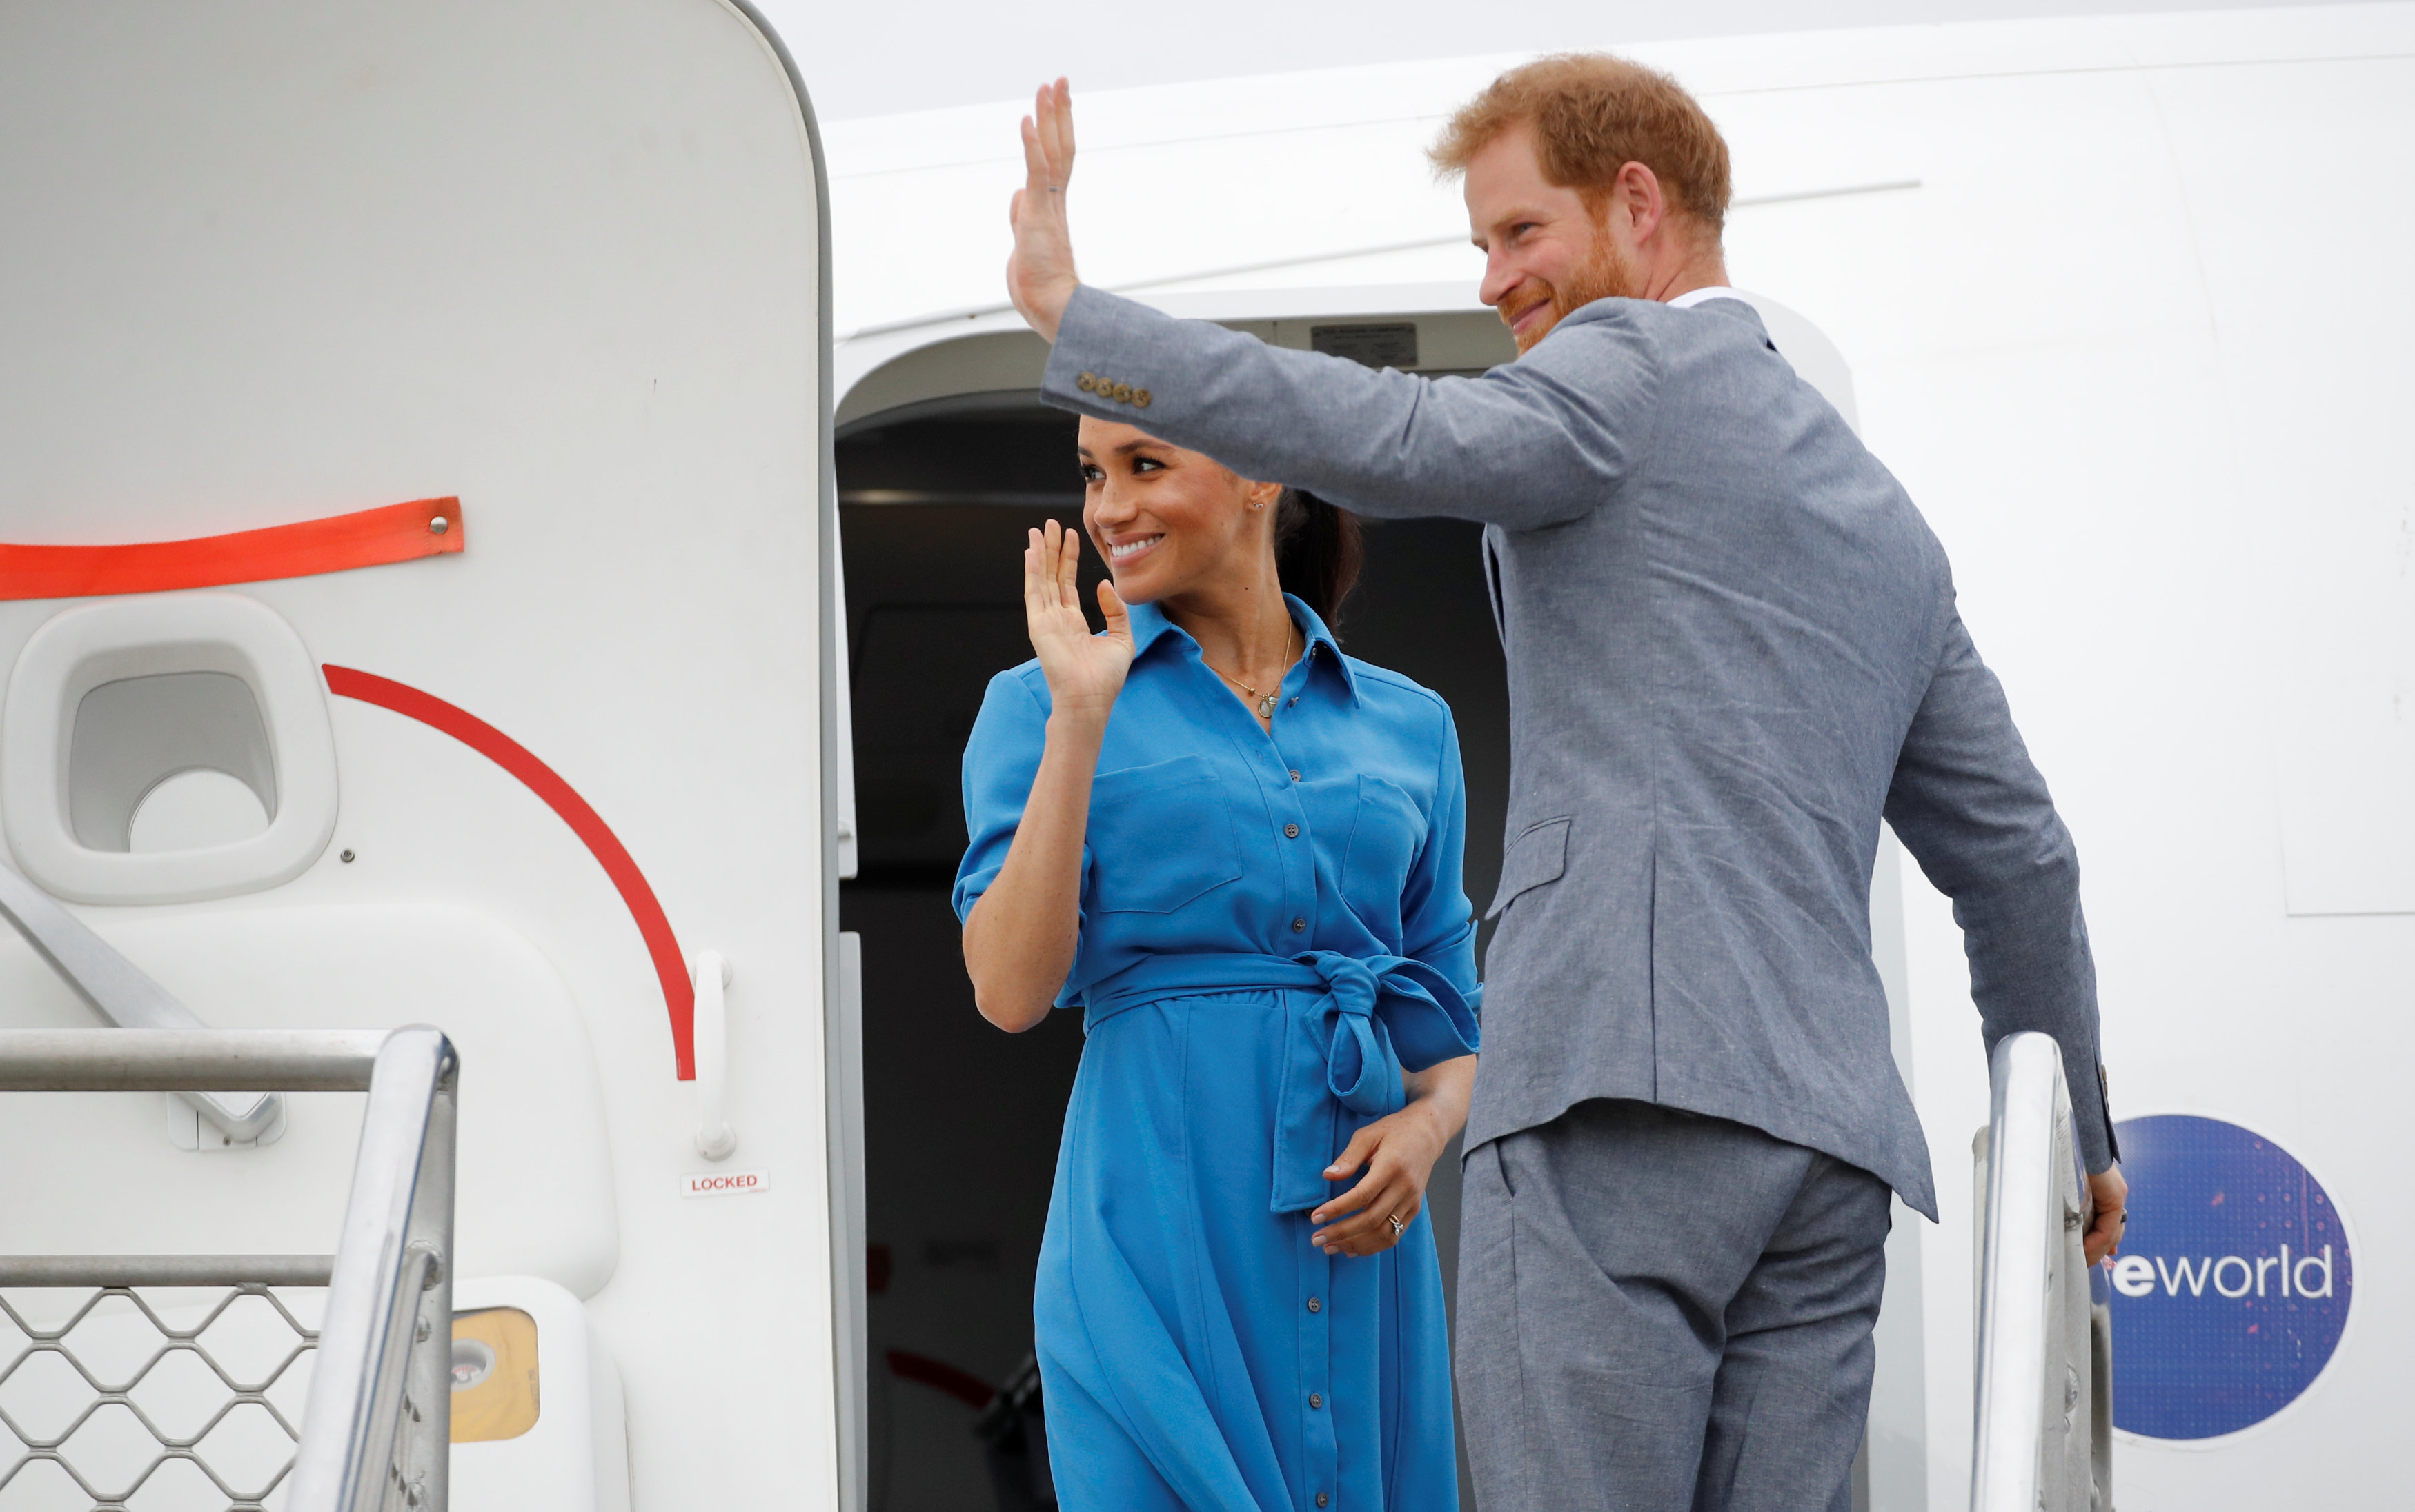 The Duke and Duchess of Sussex depart from Fua'amotu International Airport in Tonga, on day two of the royal couple's visit to Tonga.